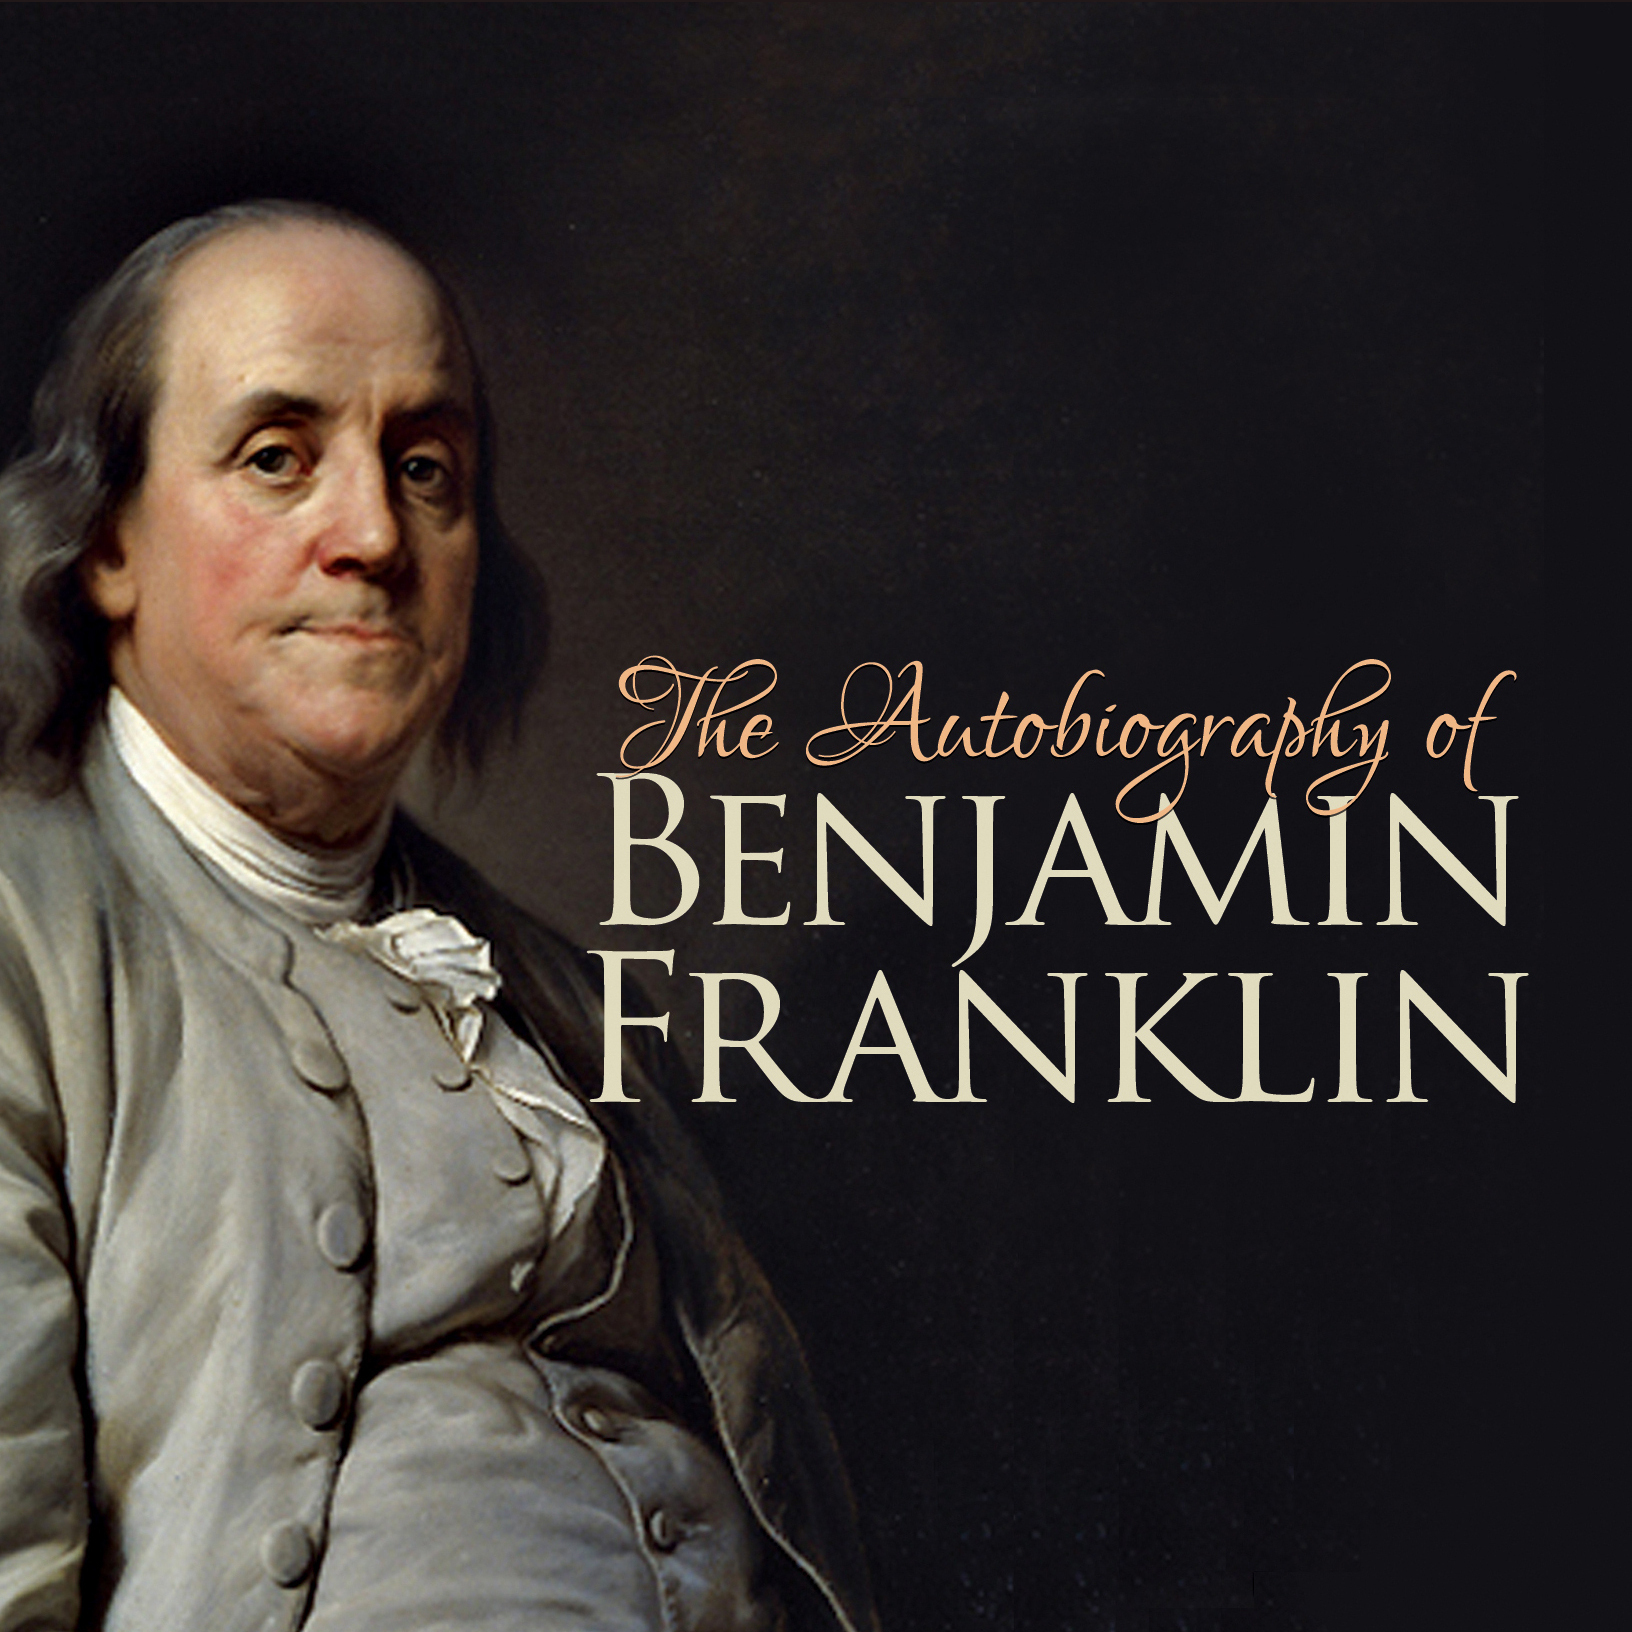 a review of an excerpt from benjamin franklins biography How benjamin franklin's dream came true: the origins of the american dream   benjamin franklin's autobiography is a strict stance against old world values   has saved because such spending was why he was unable to pay his  passage  instant tutoring reviews & testimonials how we operate press  coverage.